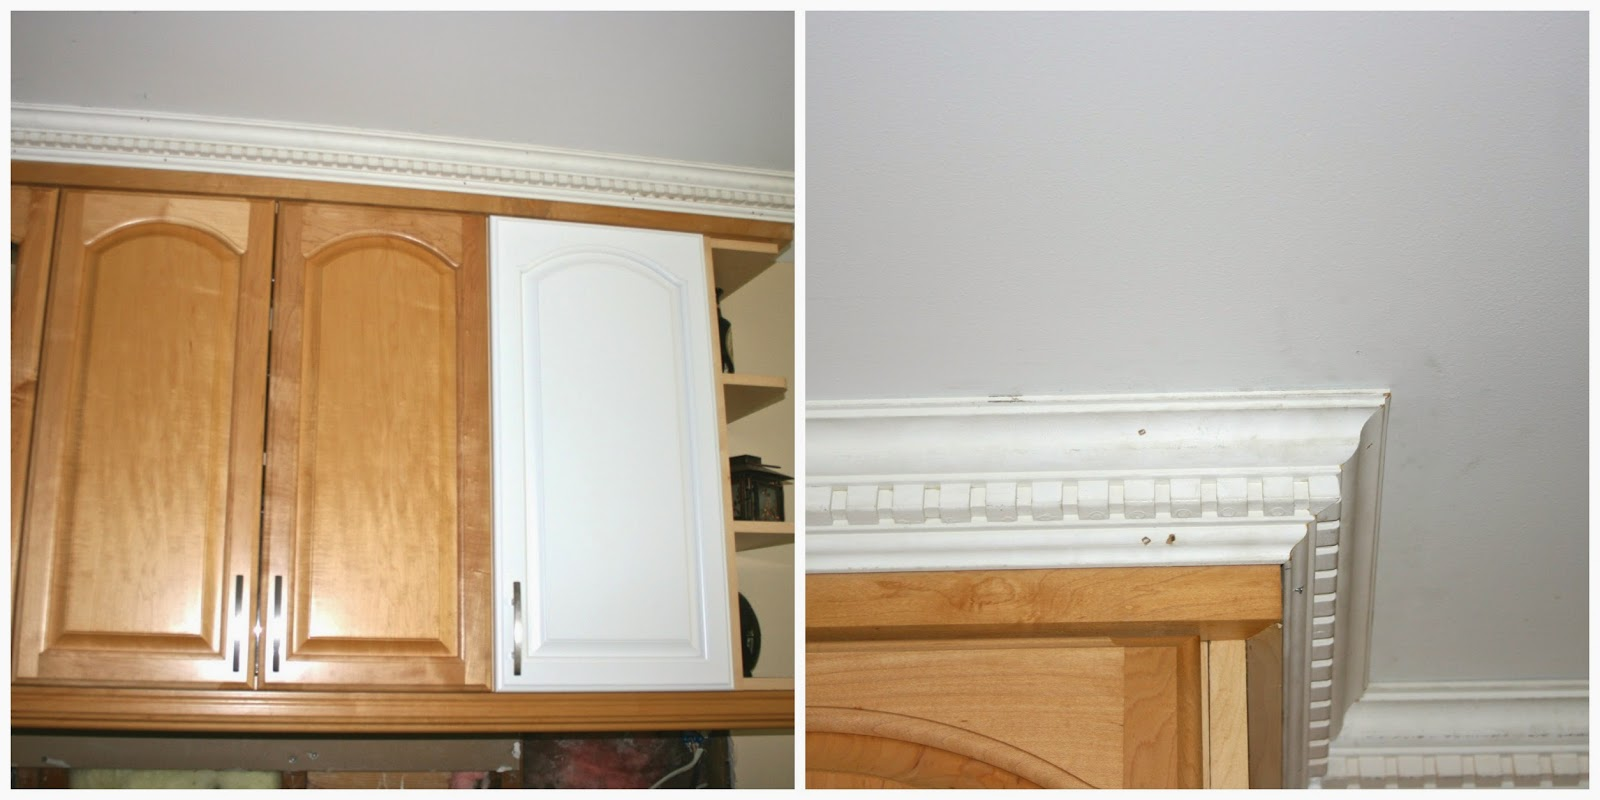 Abella design revamping your old kitchen cabinets Revamp old kitchen cabinets